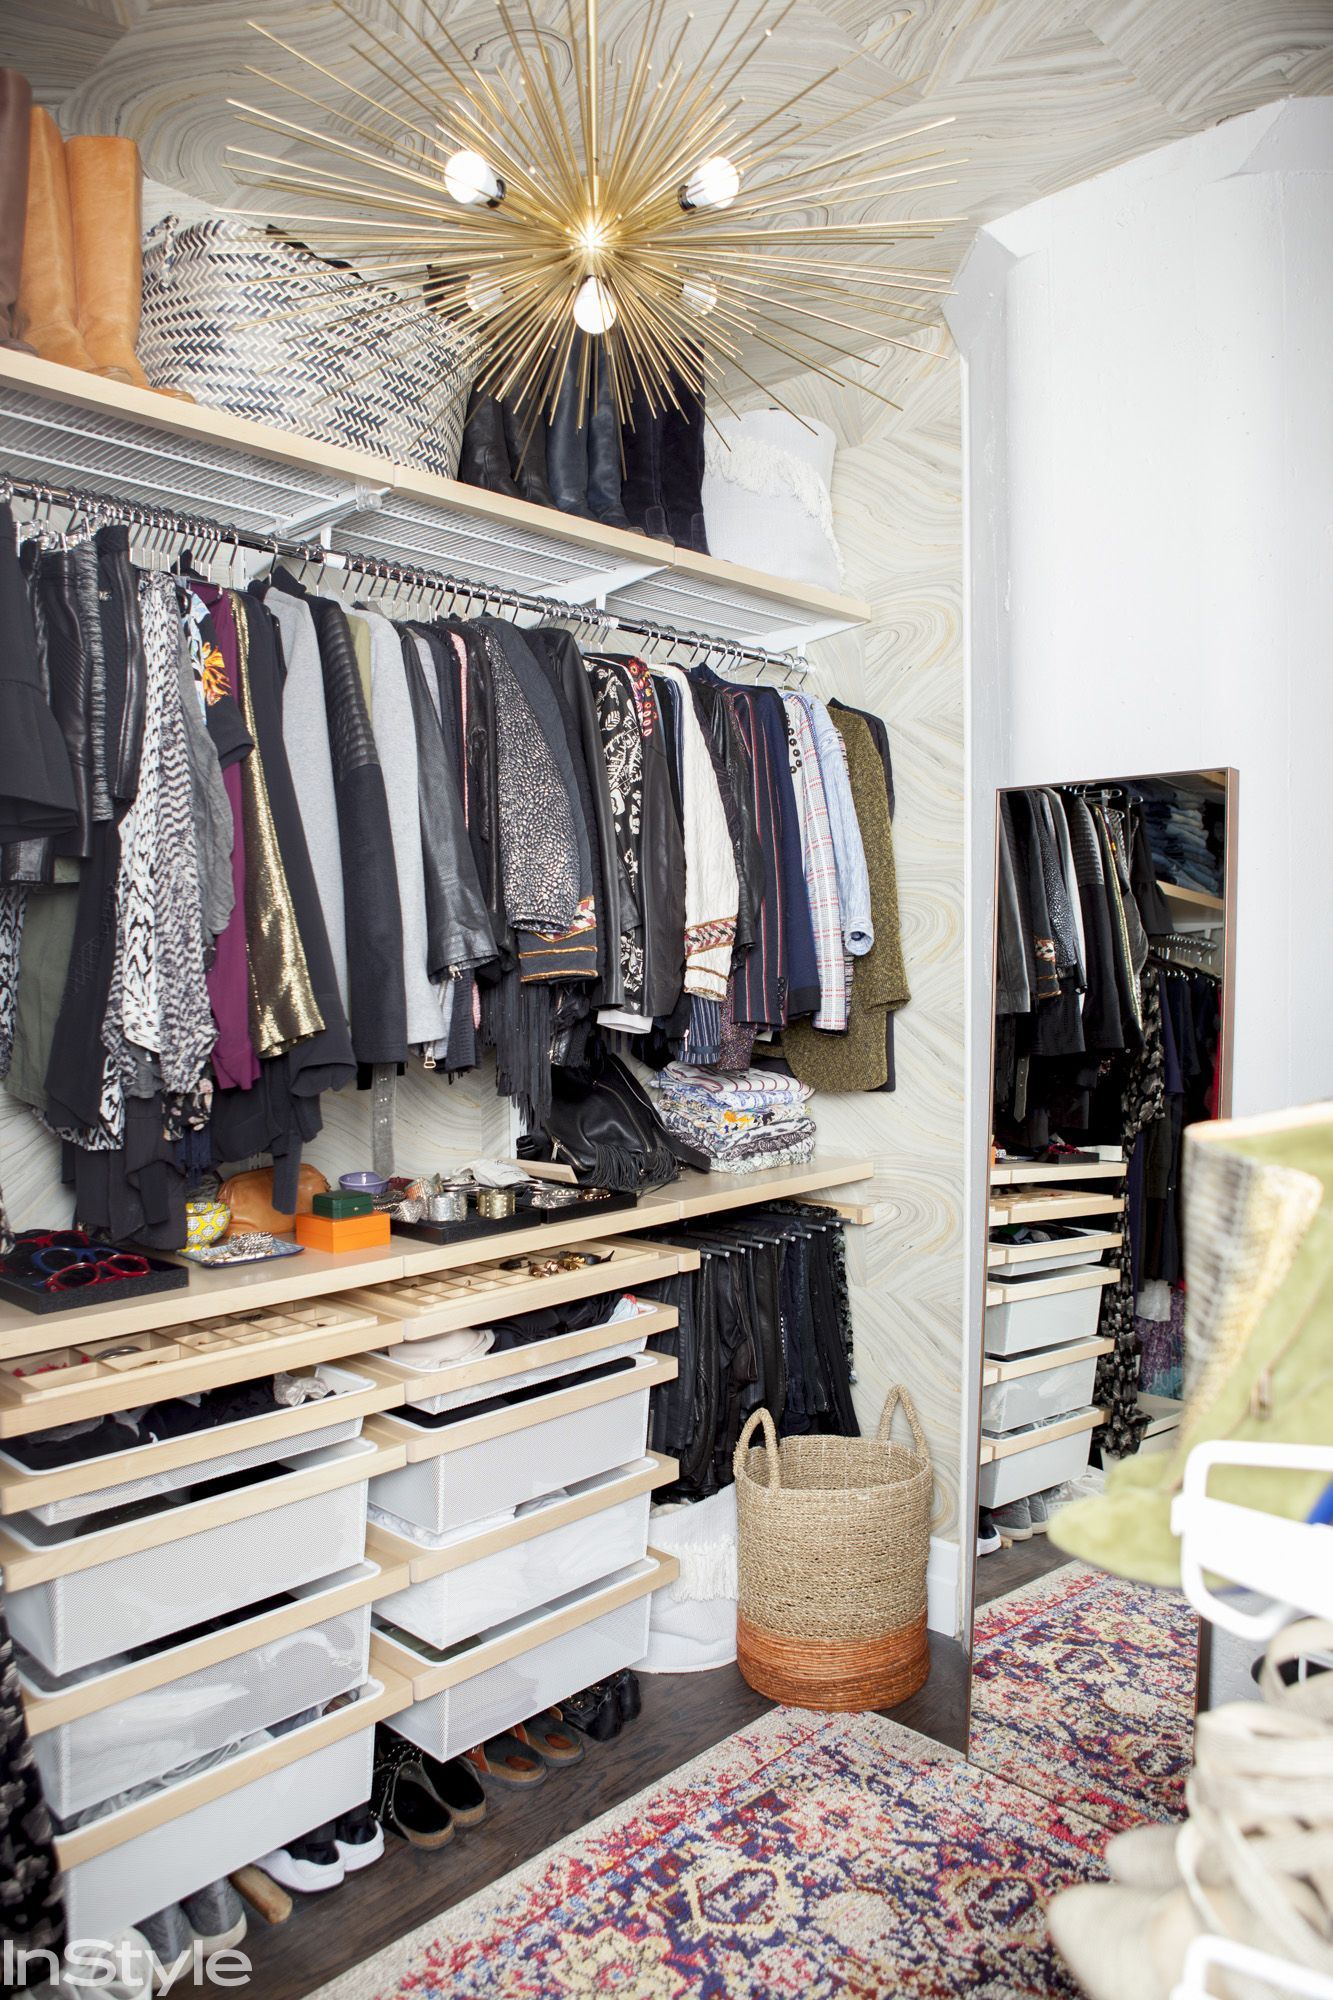 Take A Tour Of Rebecca Minkoffu0027s Stunning Closet In Her Brooklyn Home   The  Closet From InStyle.com